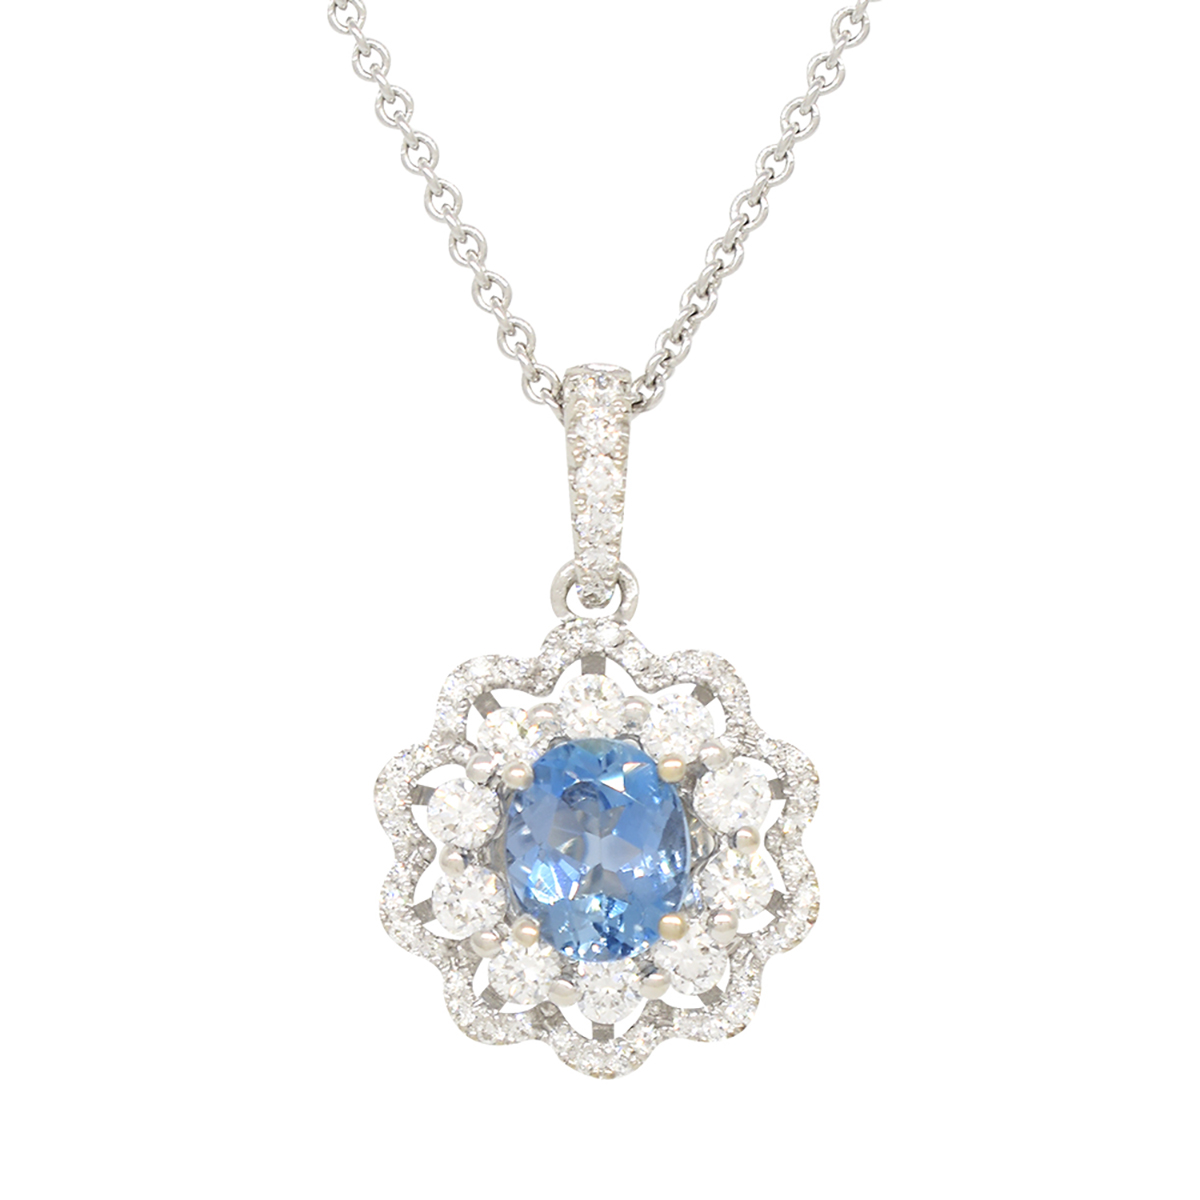 18k-white-gold-aquamarine-and-diamond-pendant-necklace-with-stunning-blue-color